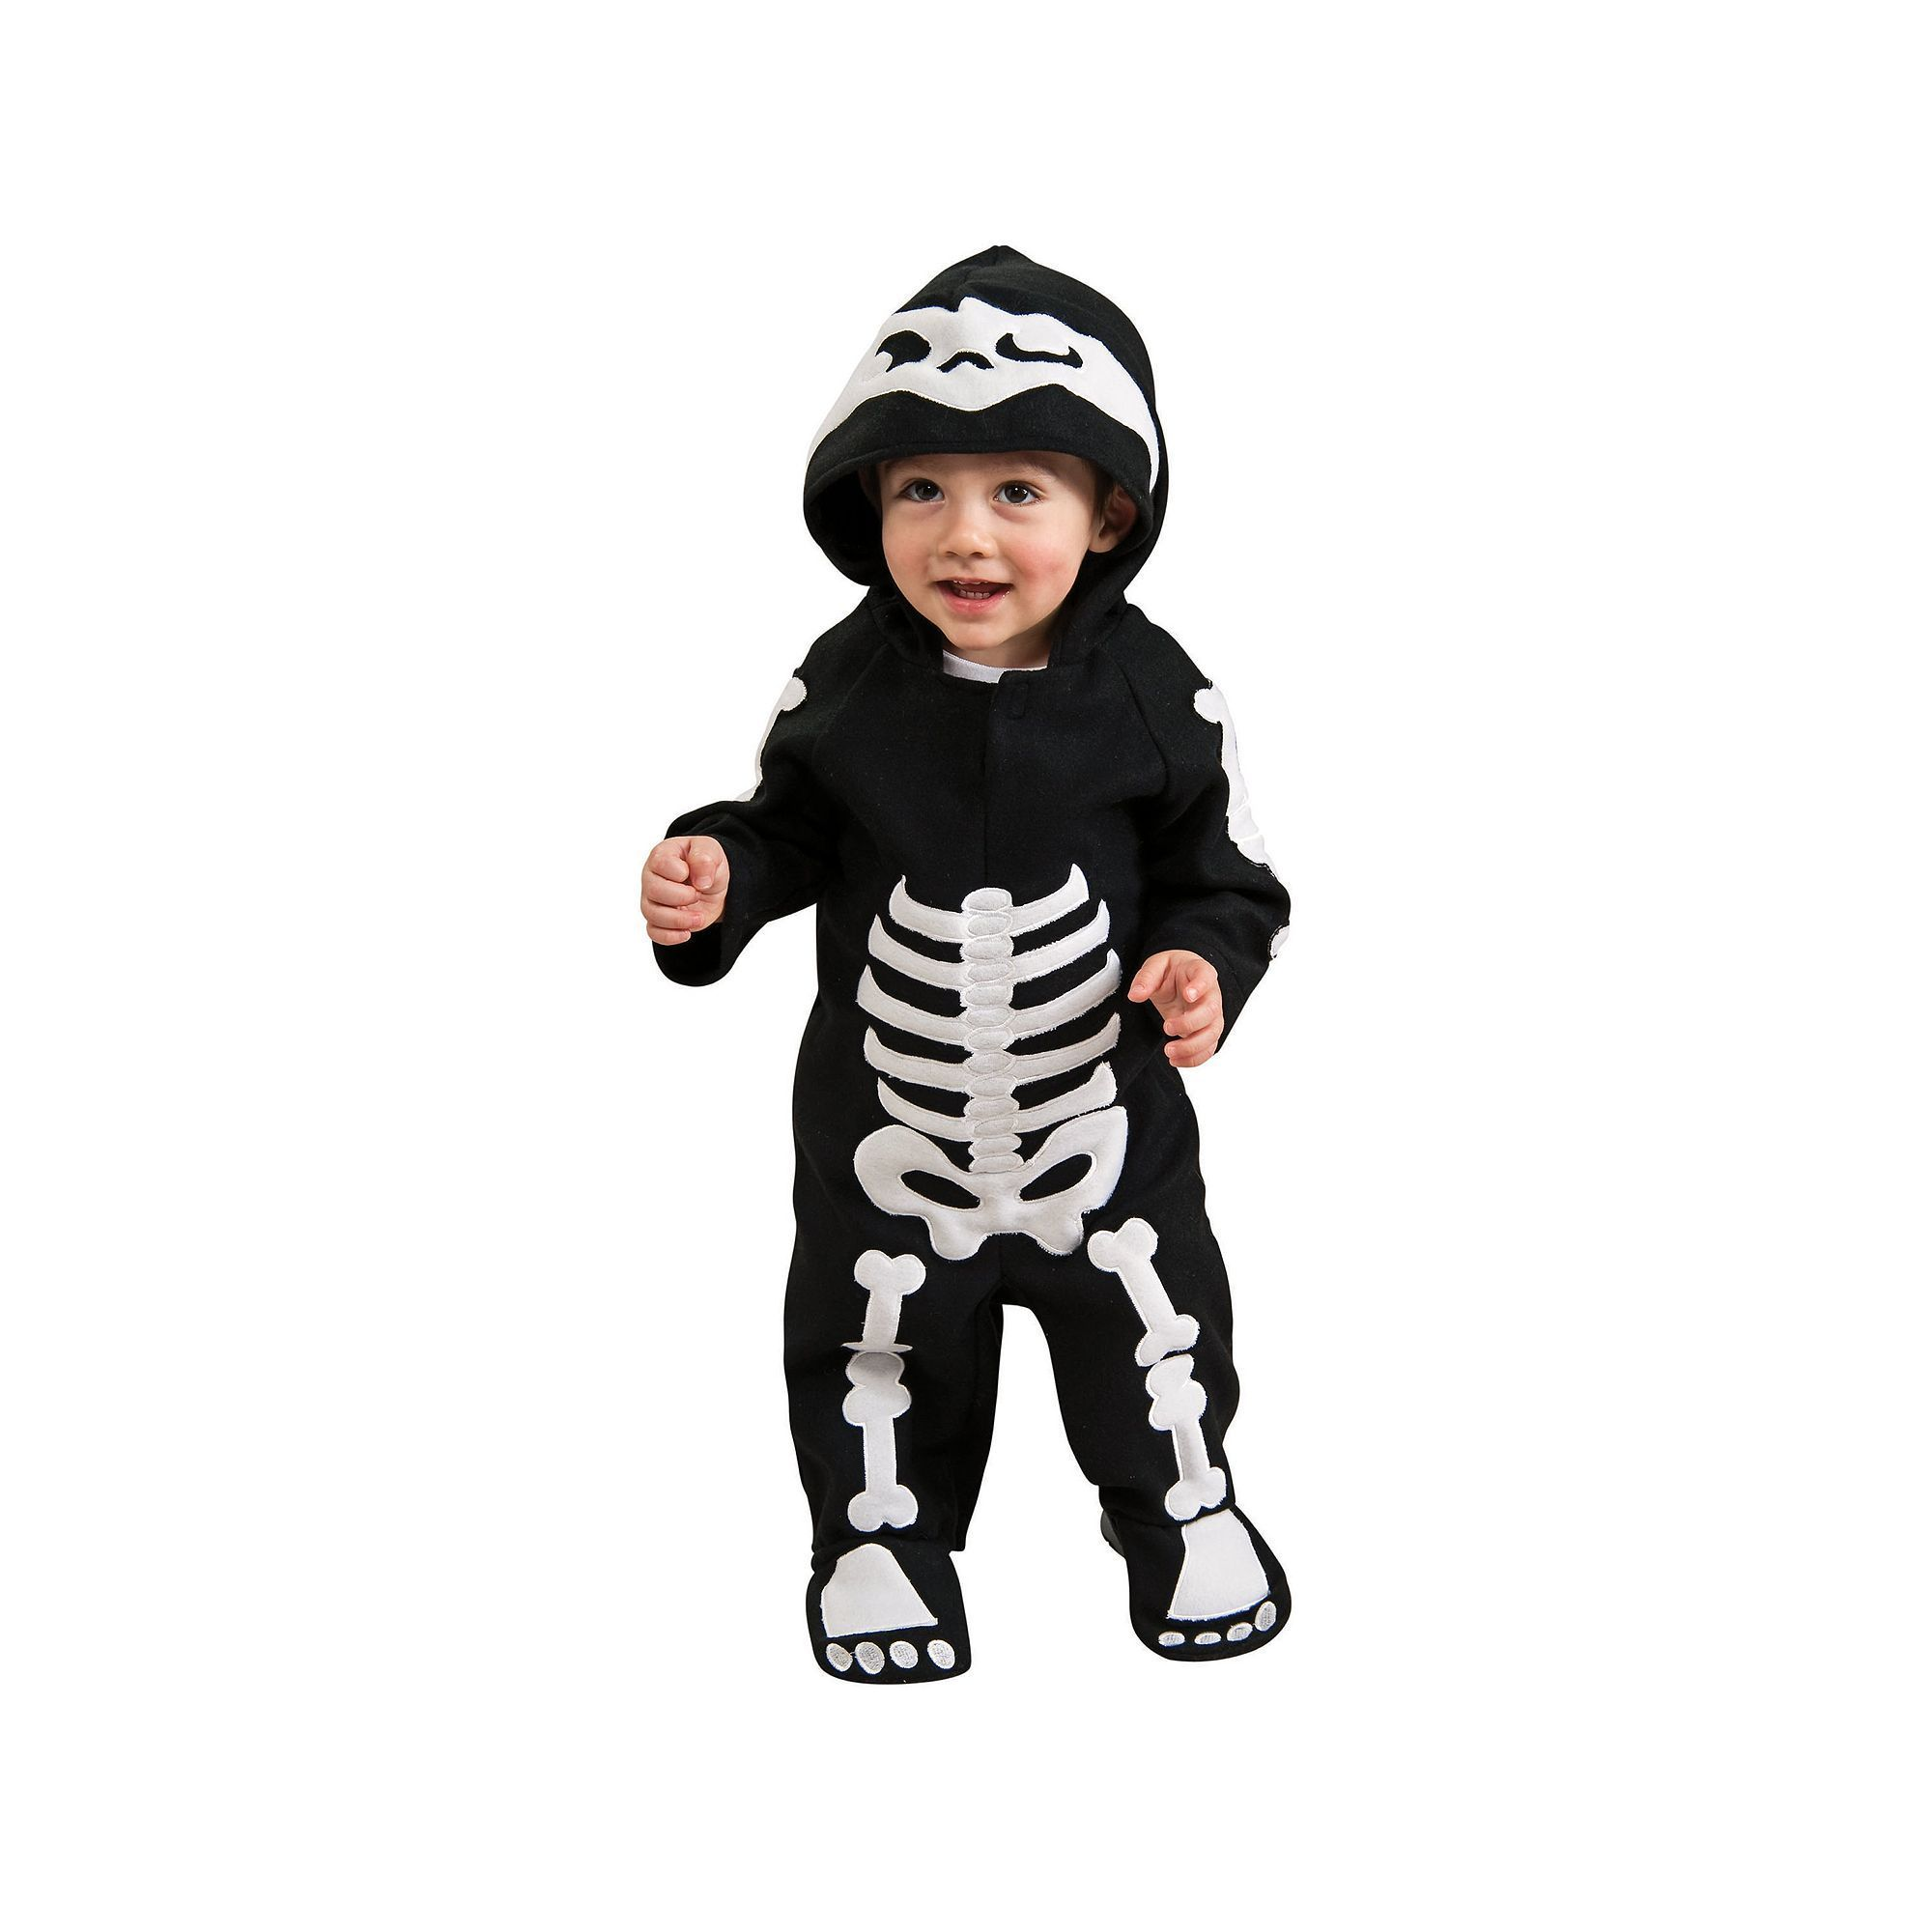 Skeleton Costume - Baby/Toddler, Infant Boy's, Size: 2-4T ...